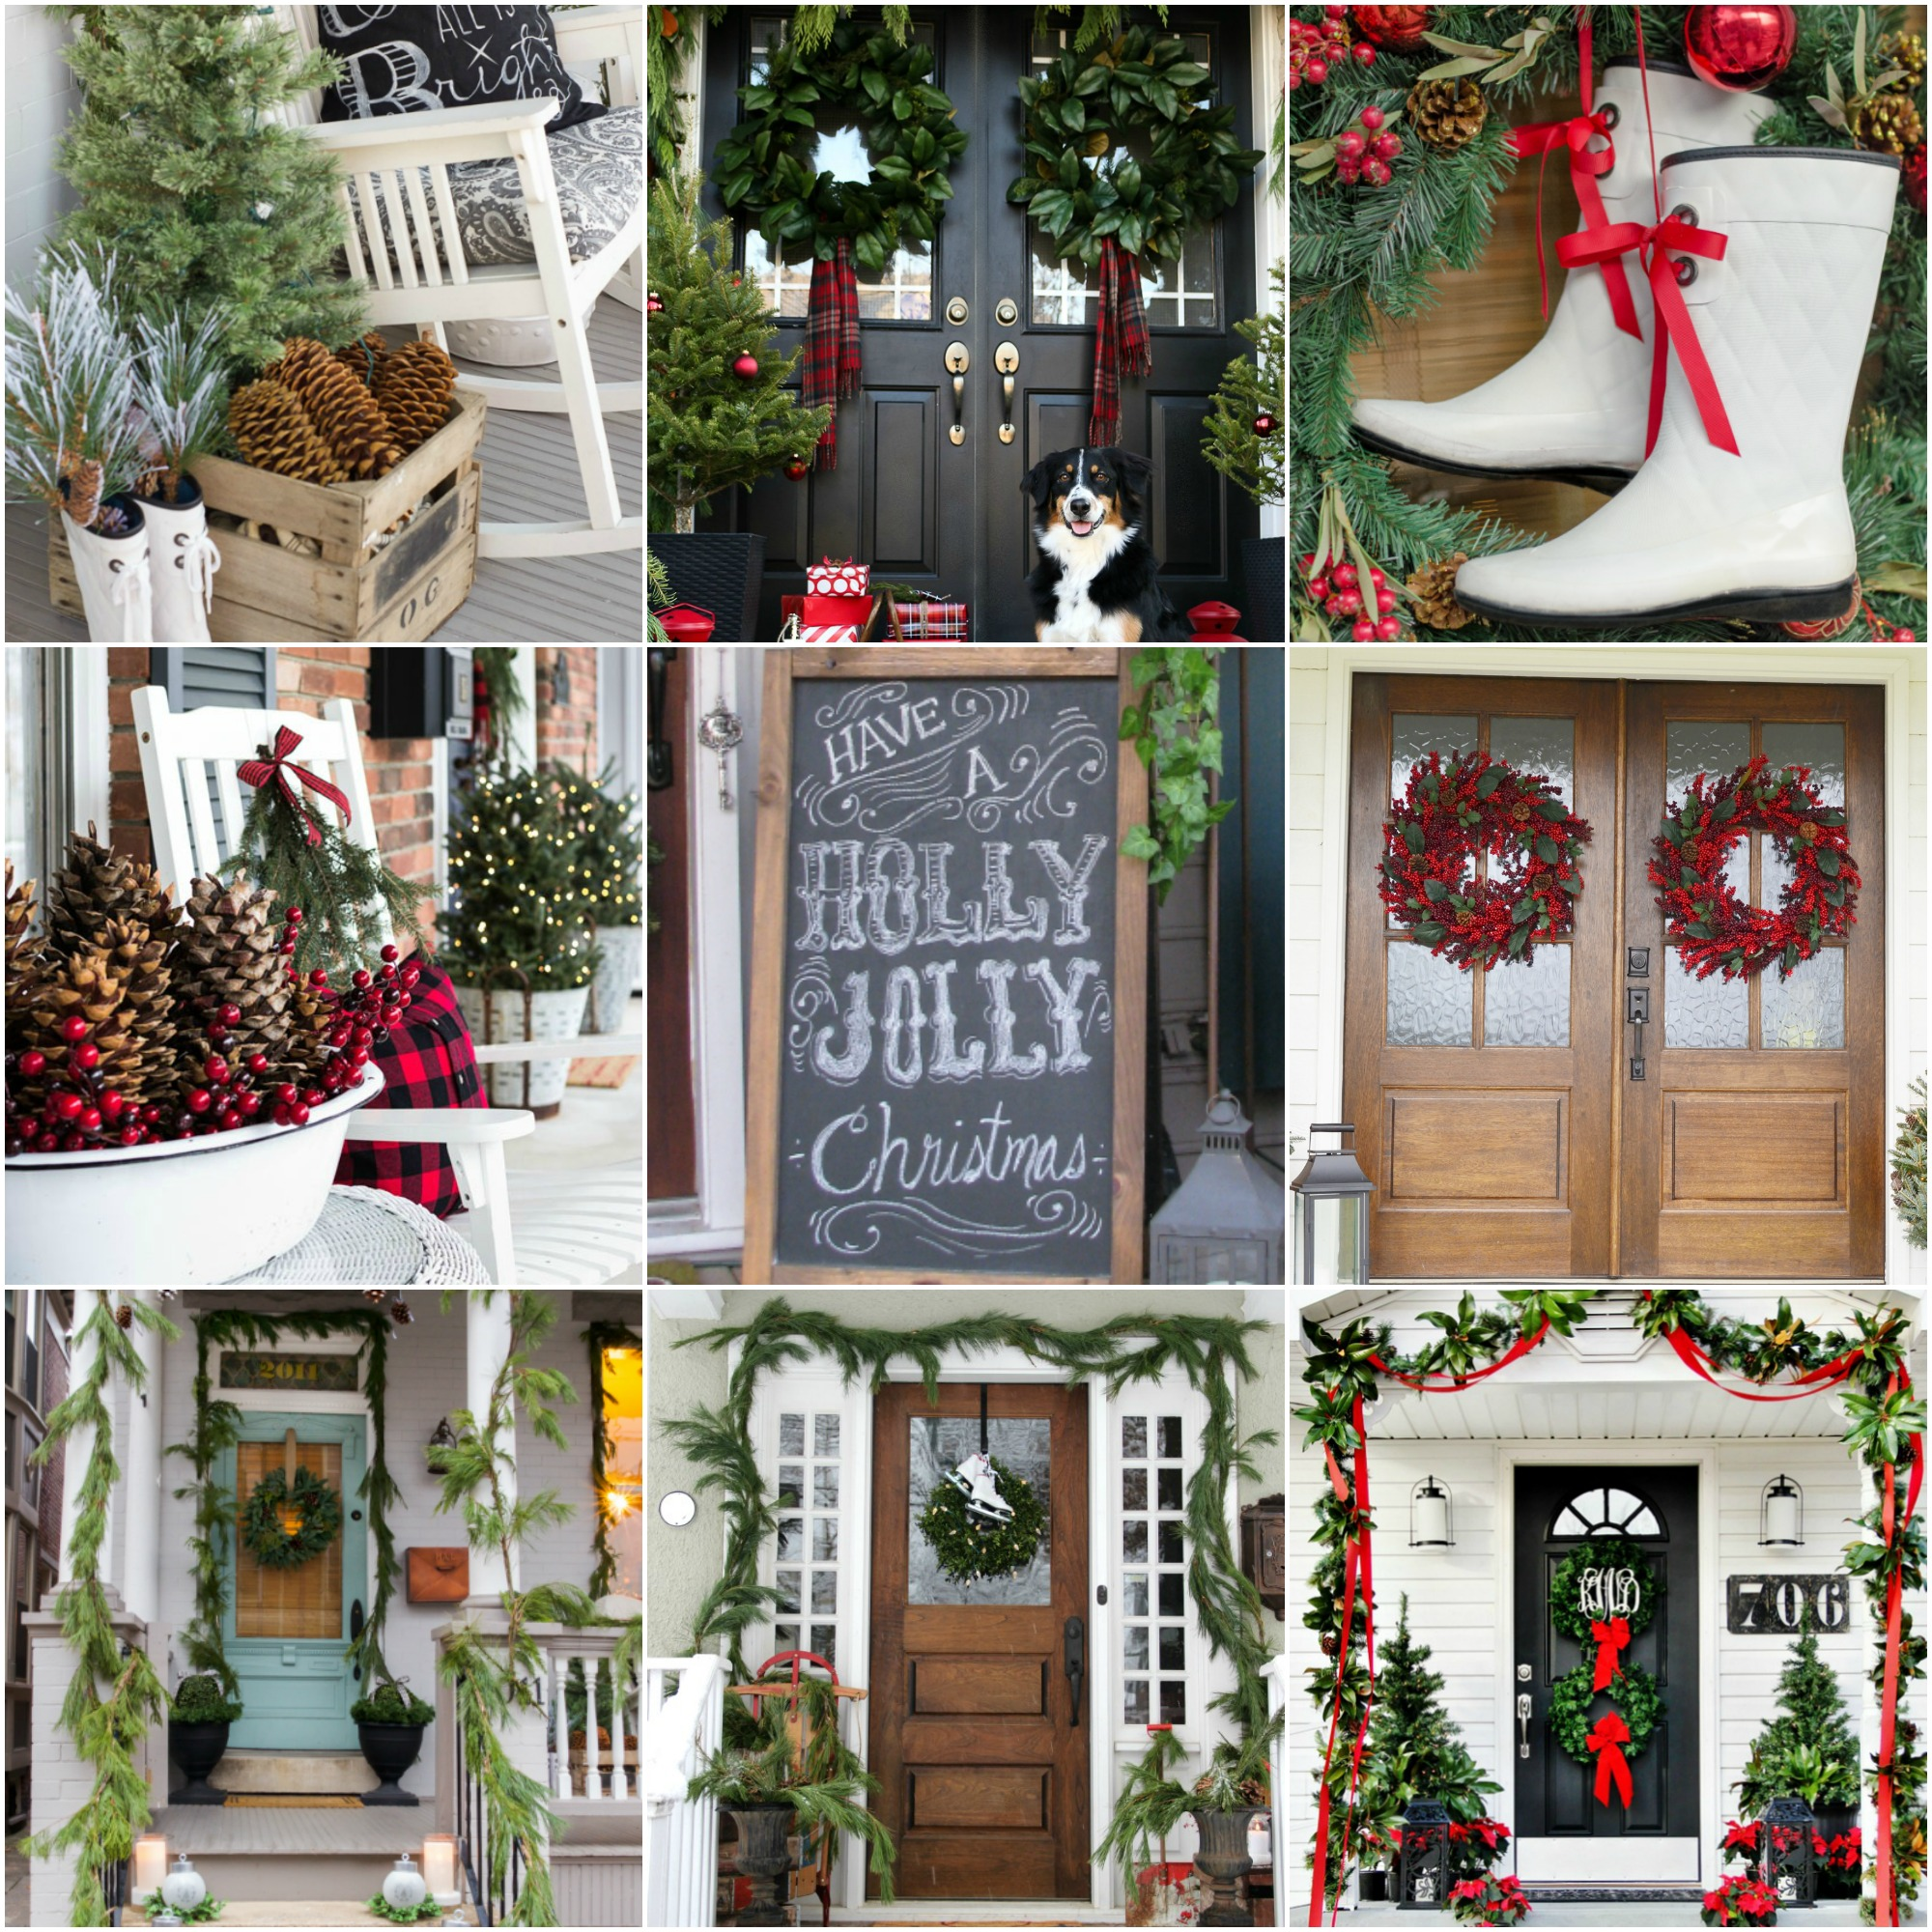 Holiday Decor Ideas Christmas: 20 Beautiful Christmas Porch Ideas {DIY Christmas Decorating}